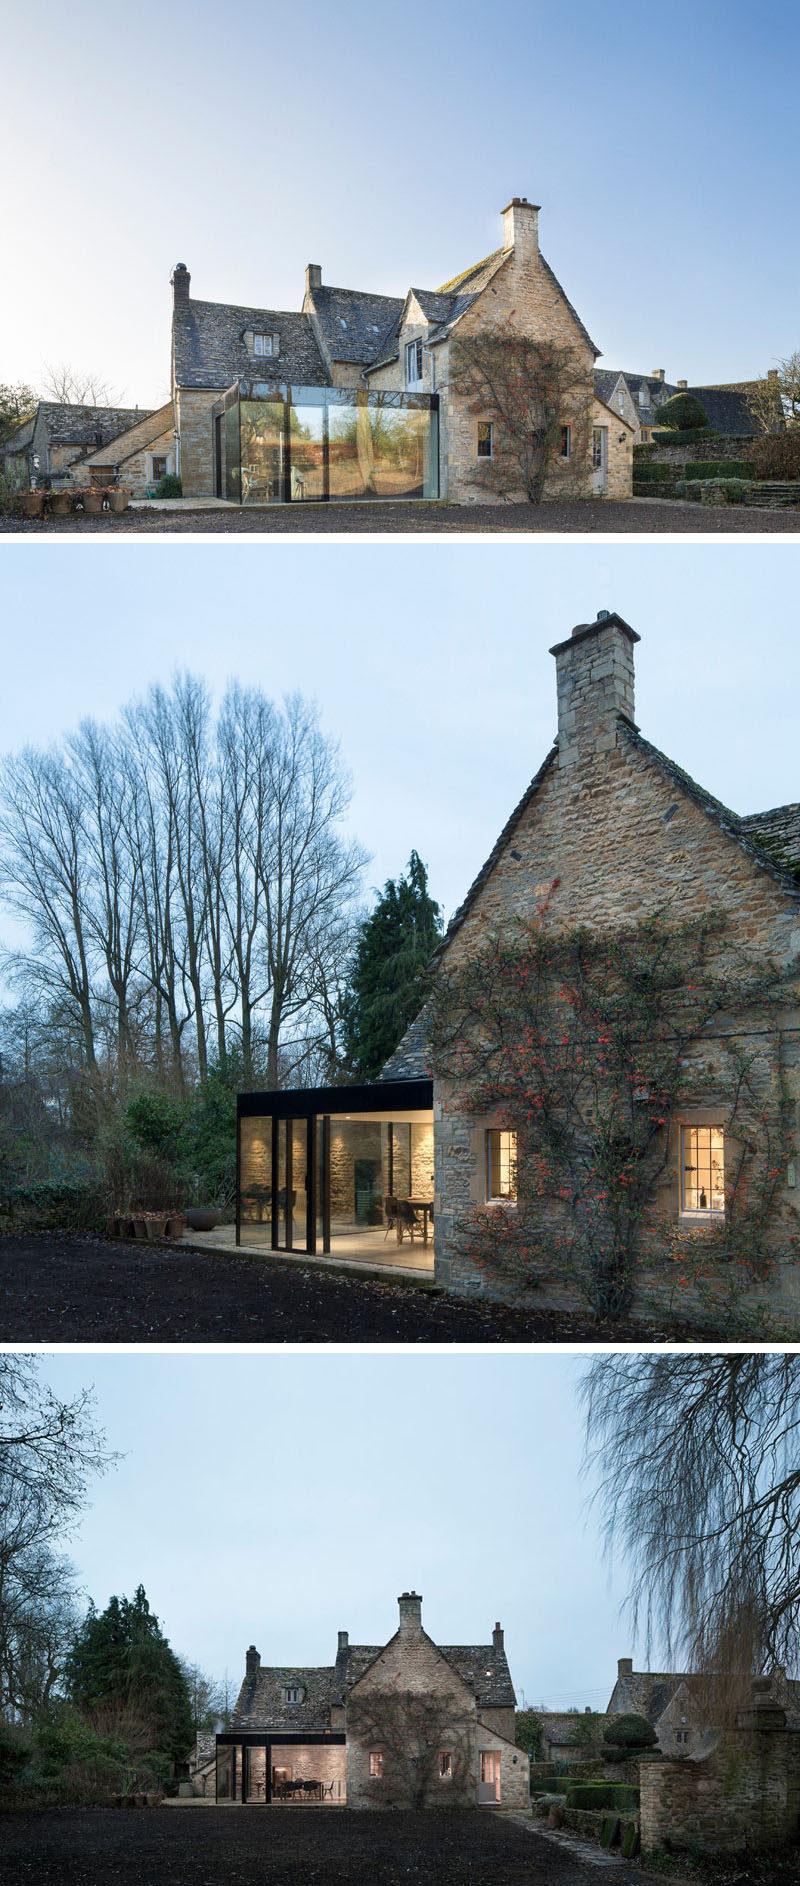 14 Examples Of British Houses With Contemporary Extensions // A traditional stone house got a contemporary extension built from glass windows and black steel that created a modern dining area still connected to the rest of the stone home.